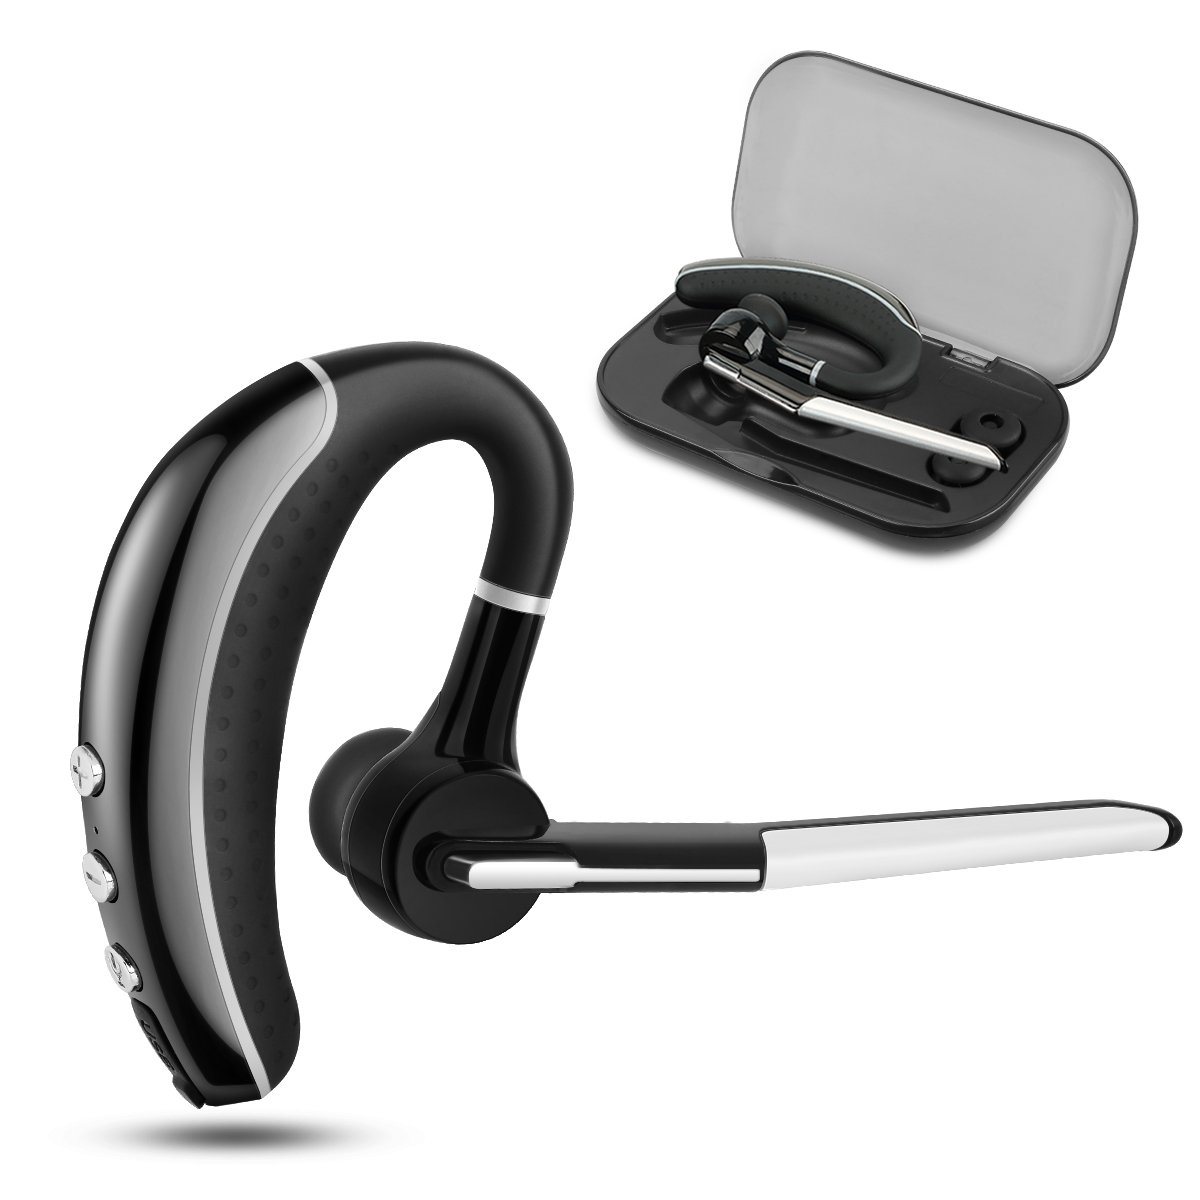 Bluetooth Headset, Wireless Earpiece V4.1 Ultralight HandsFree Business Earphone with Mic for Business/Office/Driving